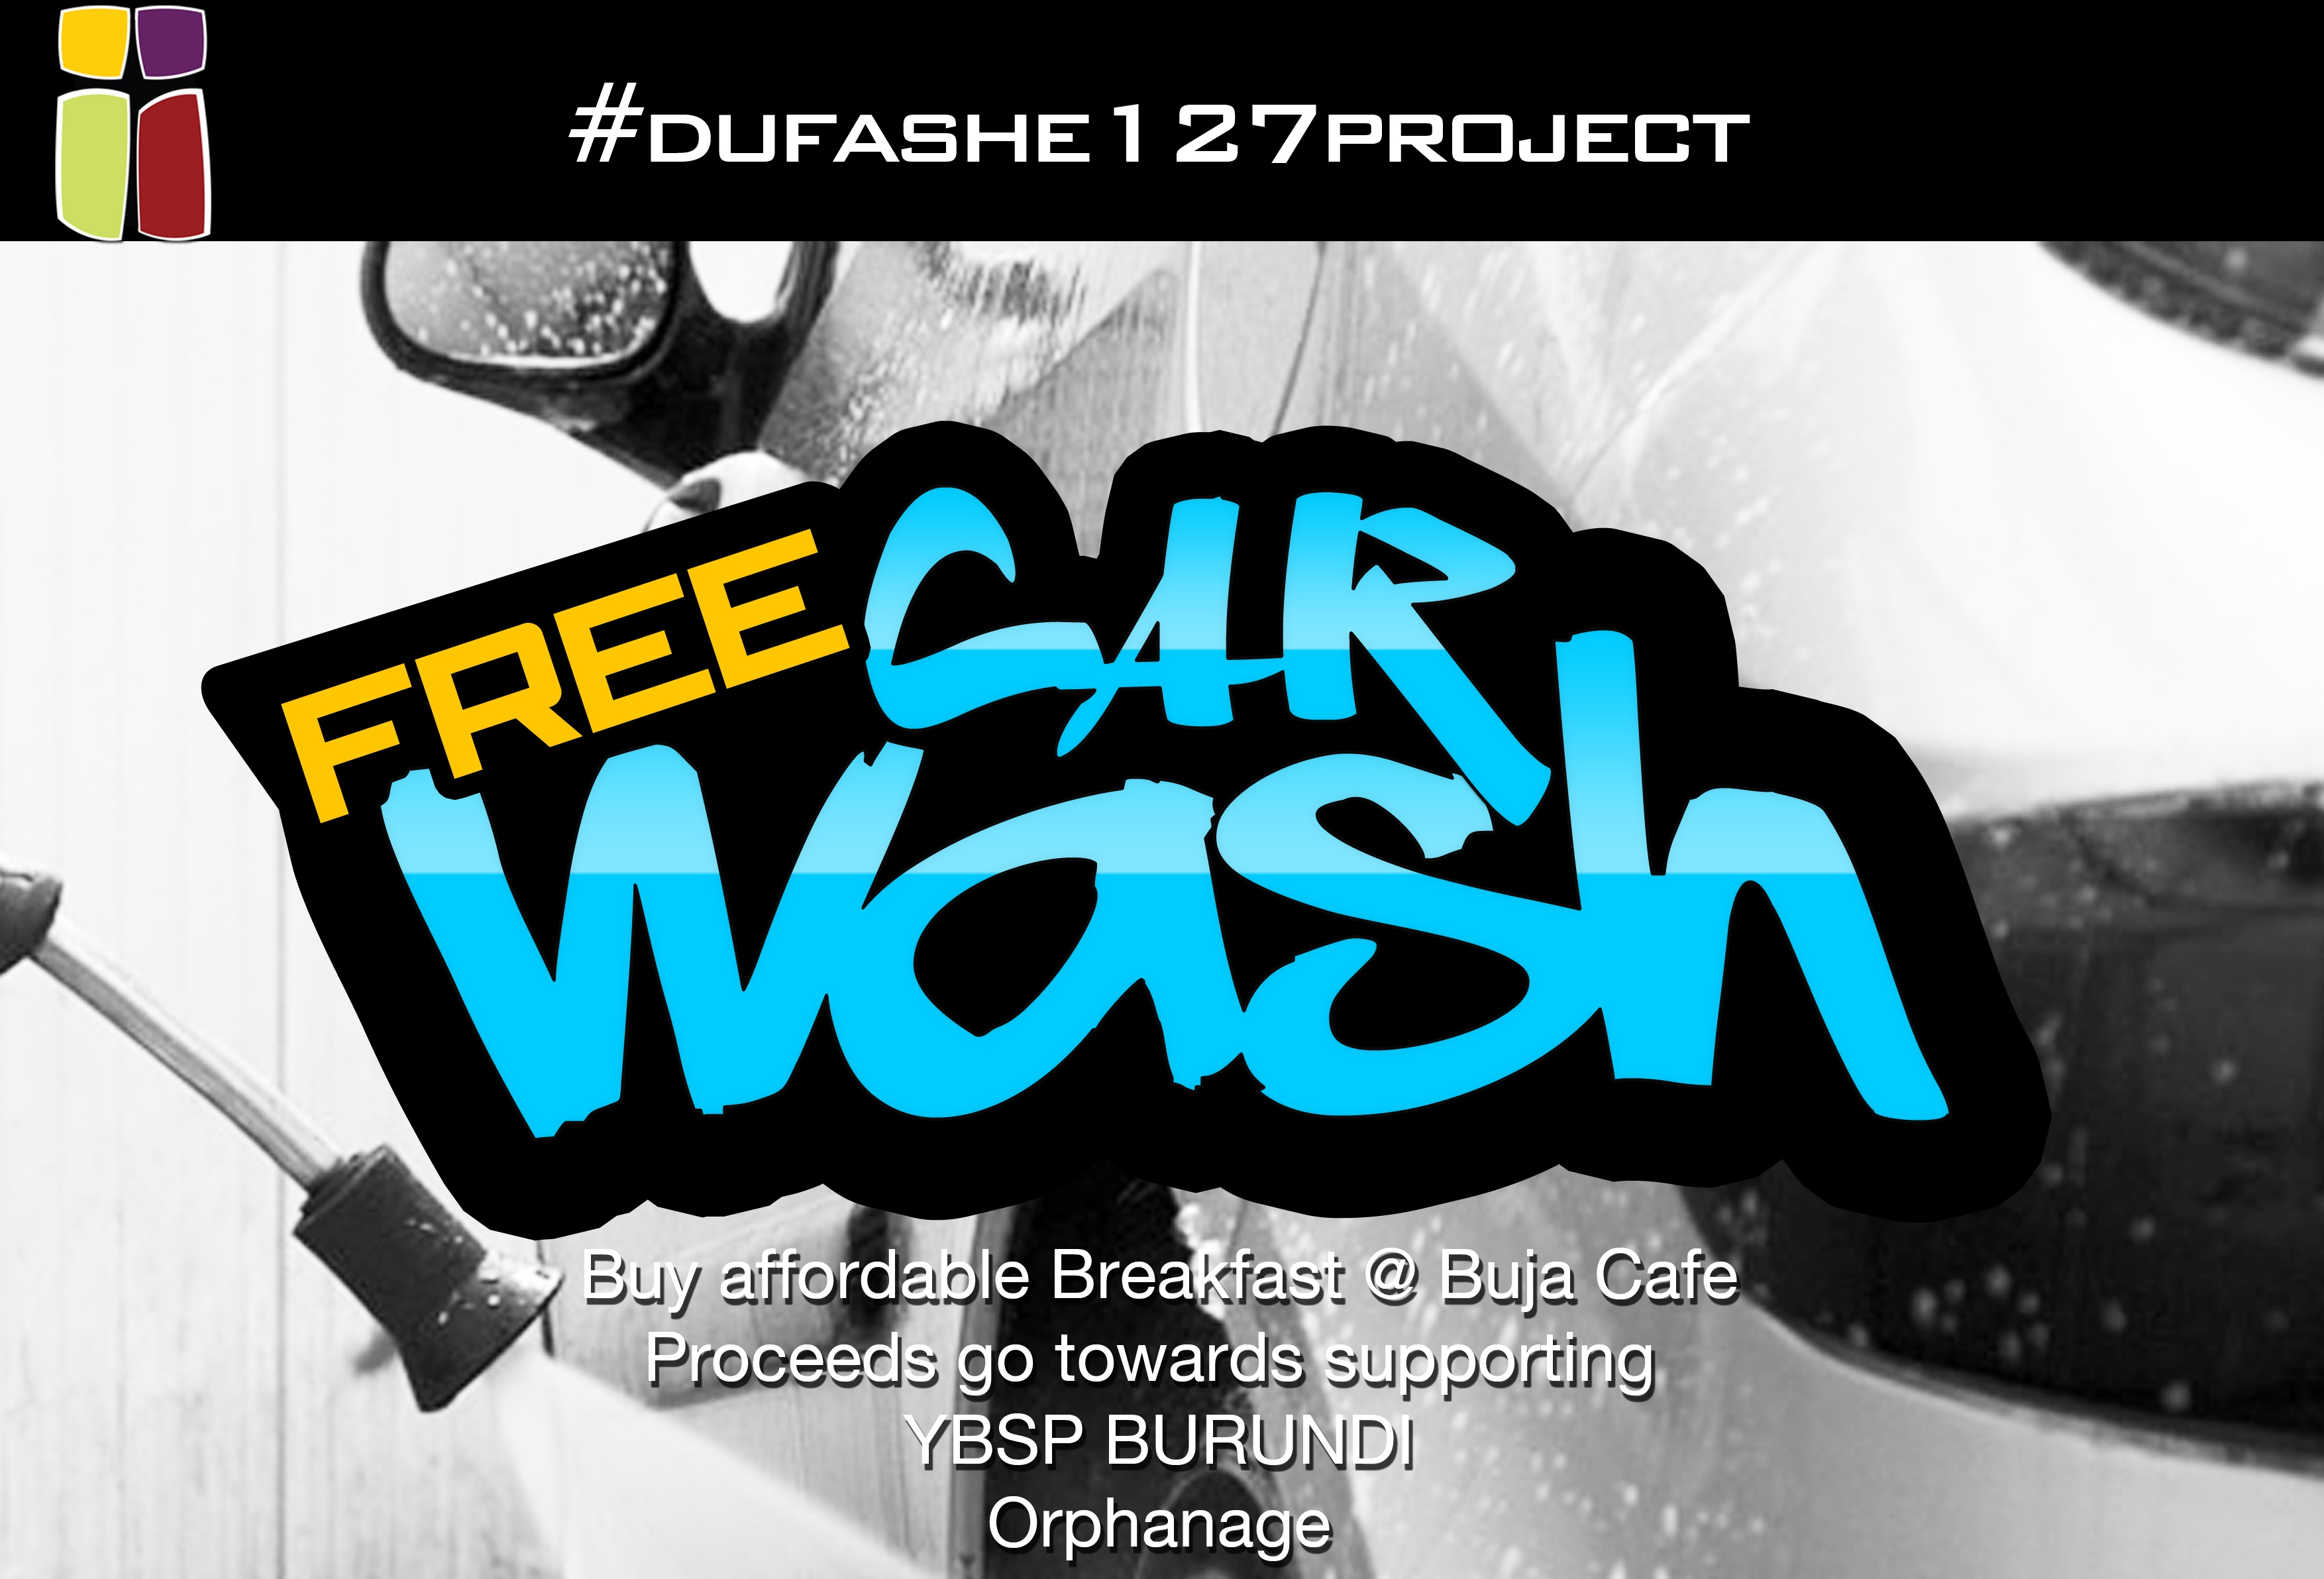 Event: Free carwash at Buja café to support YBSP orphanage